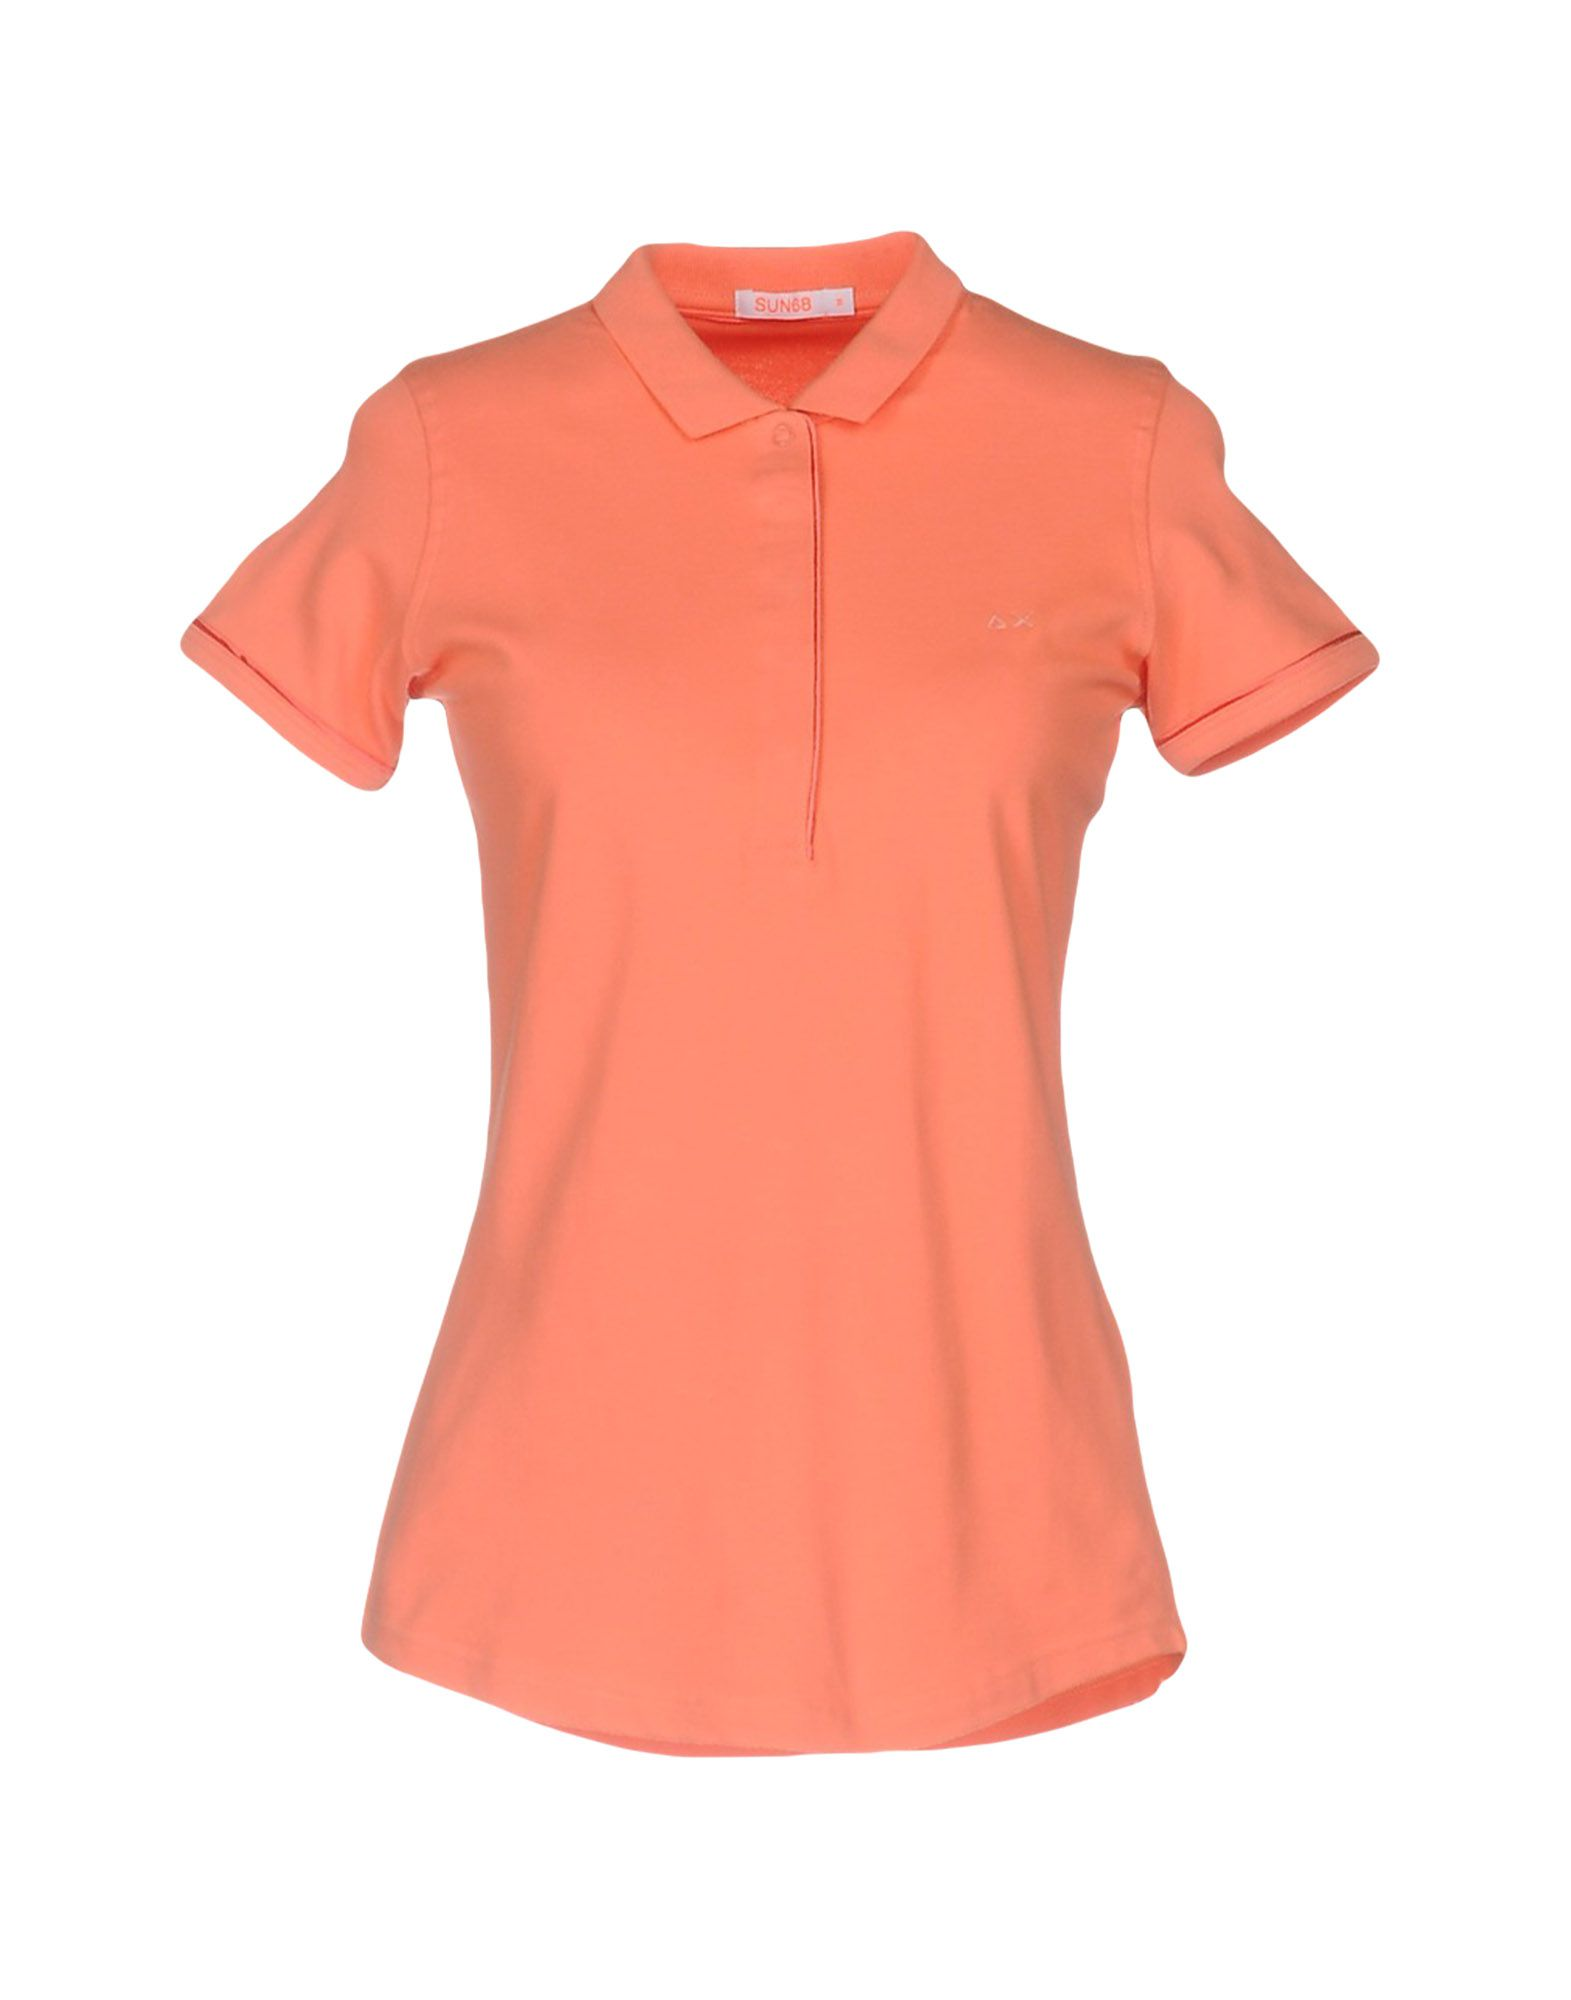 sun 68 female sun 68 polo shirts